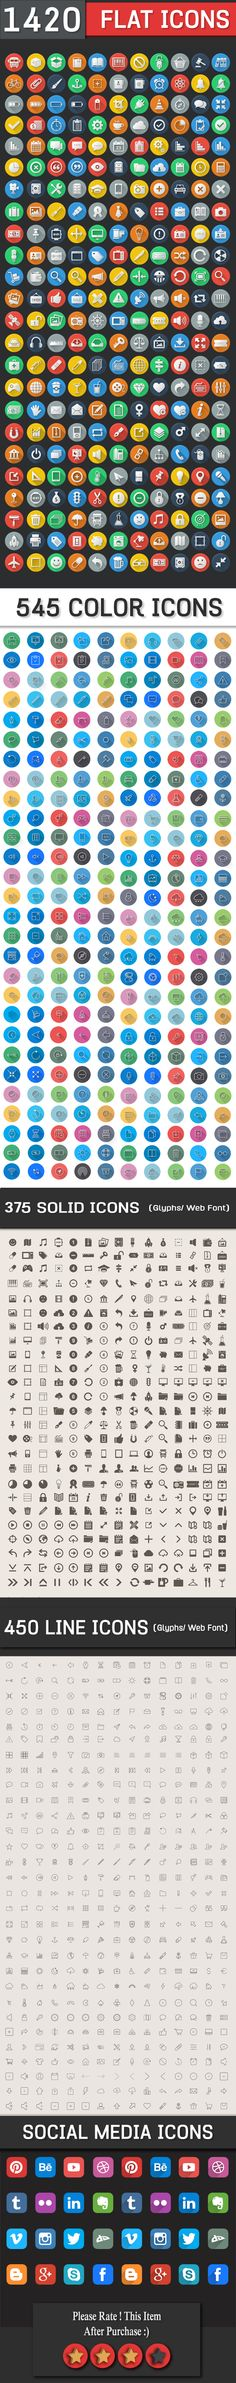 1400+ Flat Icons Bundle – Wp, ios7, Android ready Icons set for Designers and Developers from @Cursorch on @Gumroad: https://gum.co/ddm9 Latest News & Trends on #webdesign and #webdevelopment | http://webworksagency.com